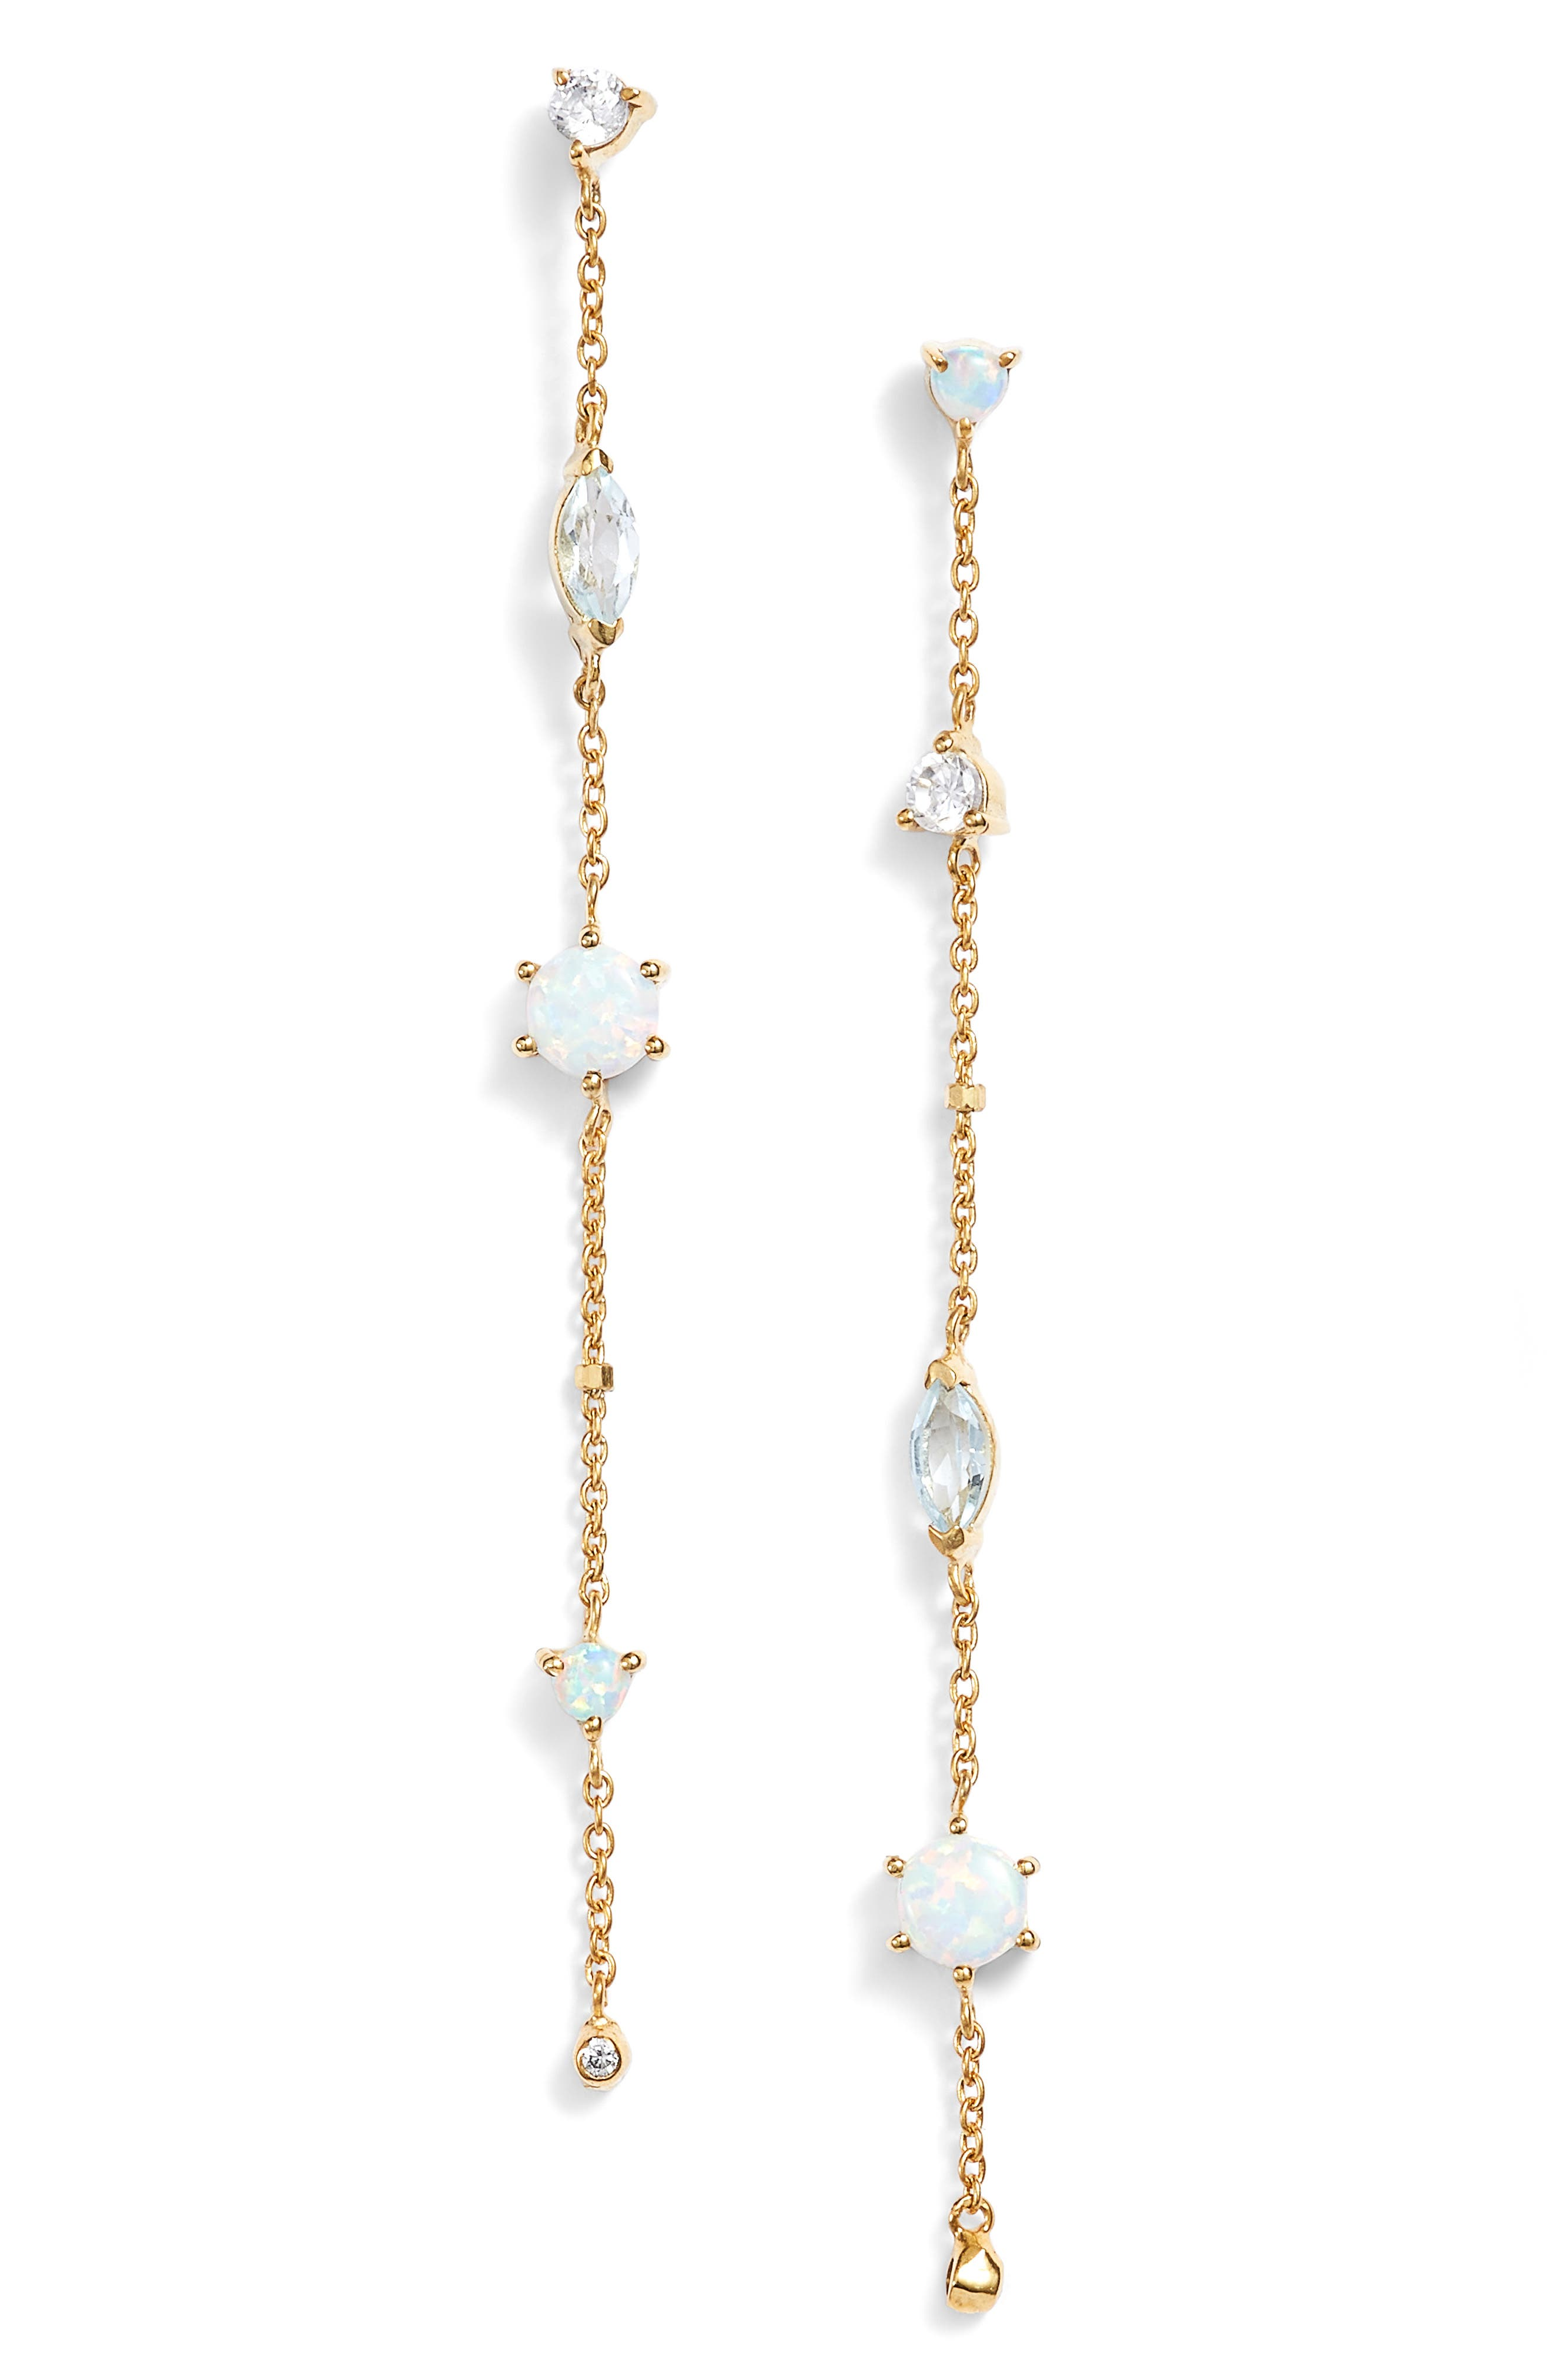 Sydney Multistone Chain Earrings,                             Main thumbnail 1, color,                             Gold